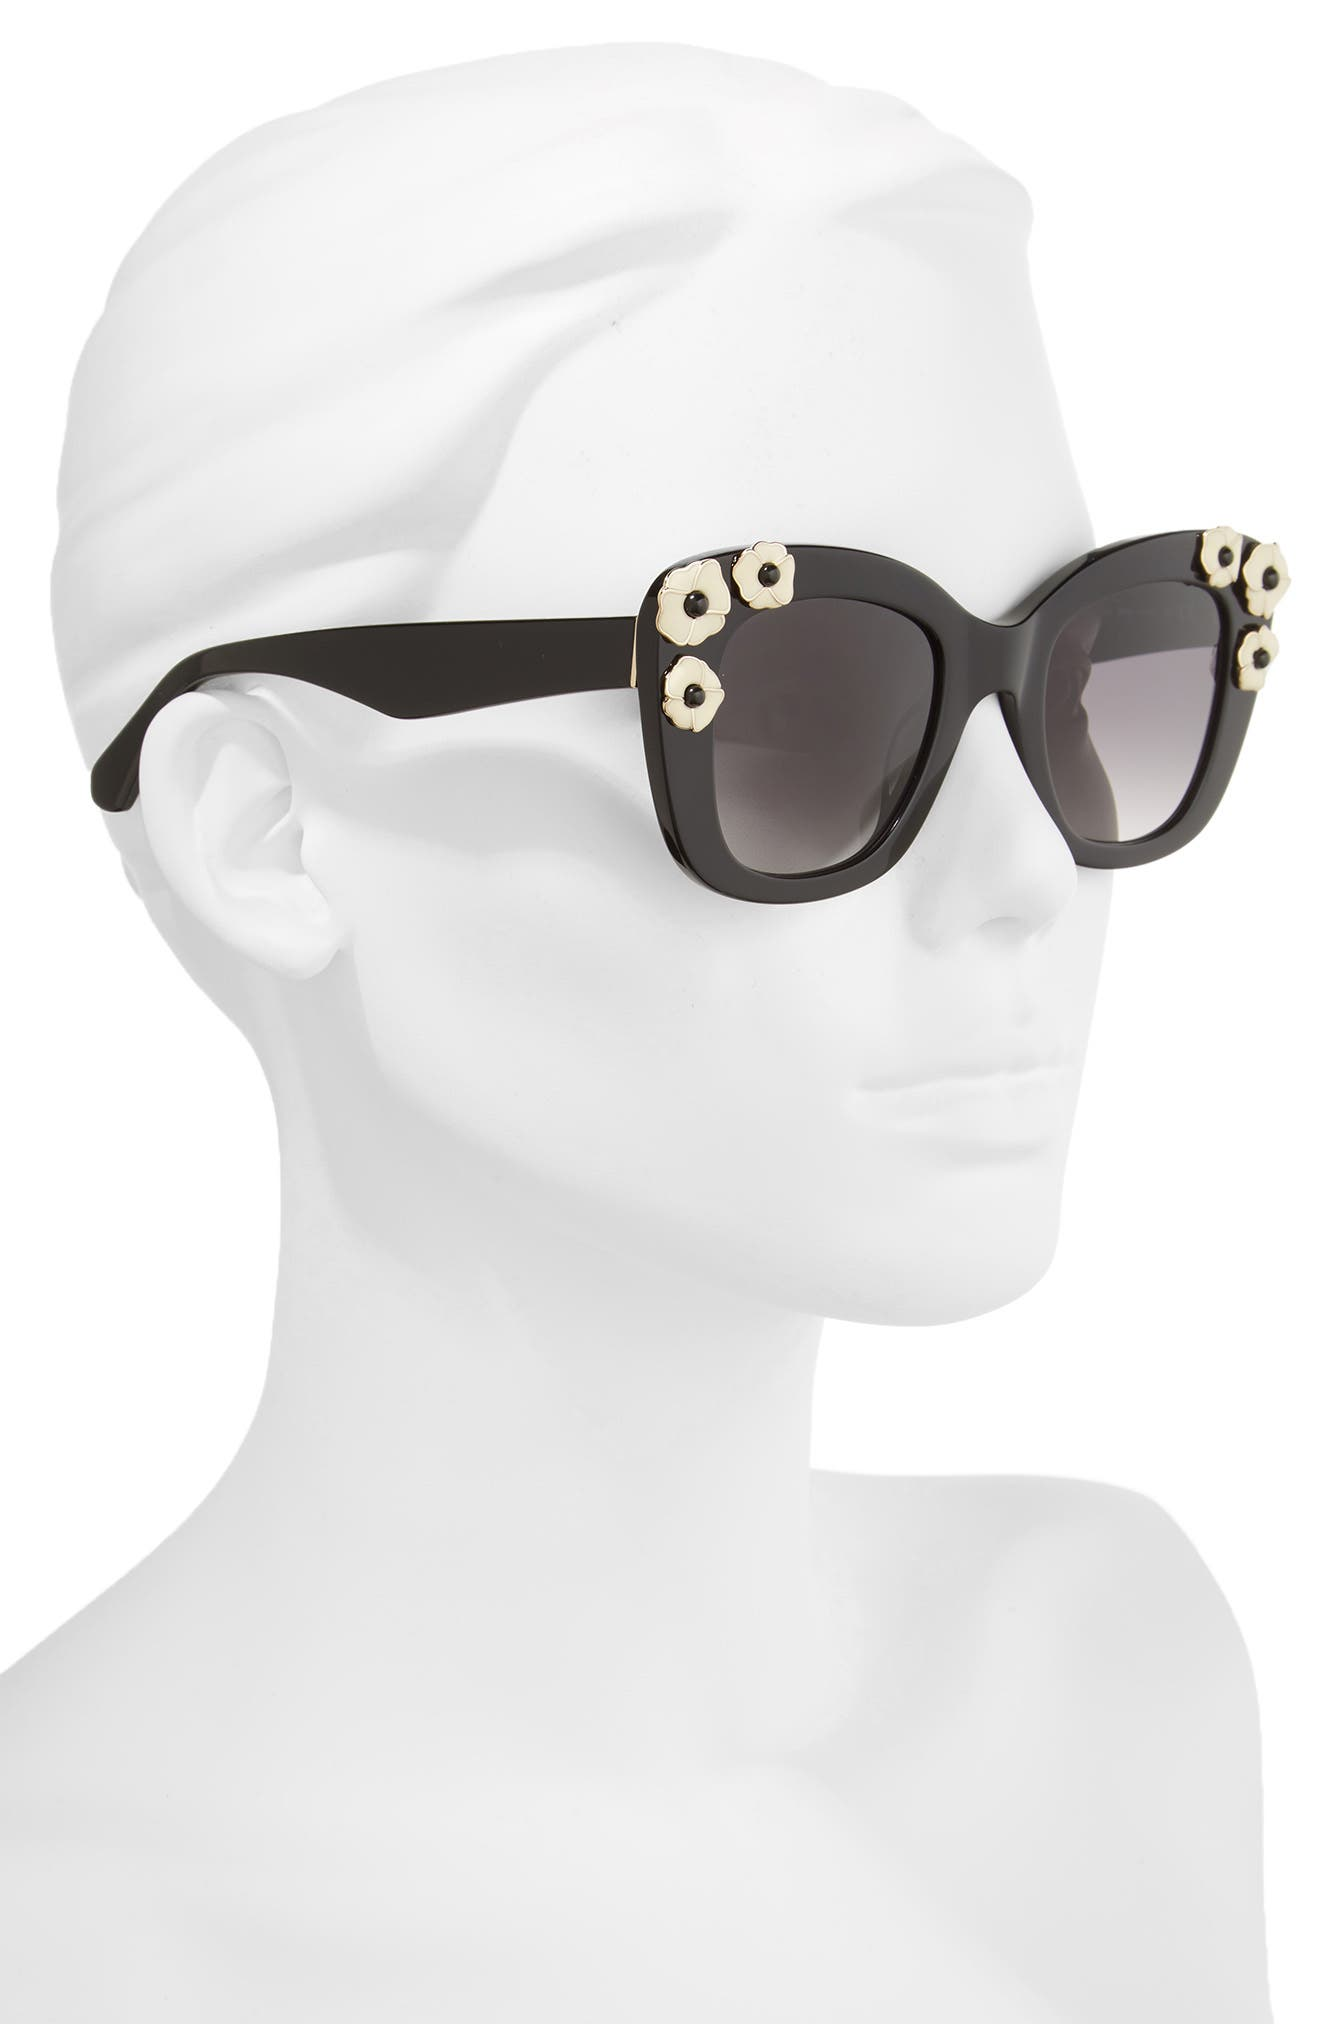 kate spade drystle 49mm floral embellished square sunglasses,                             Alternate thumbnail 2, color,                             001